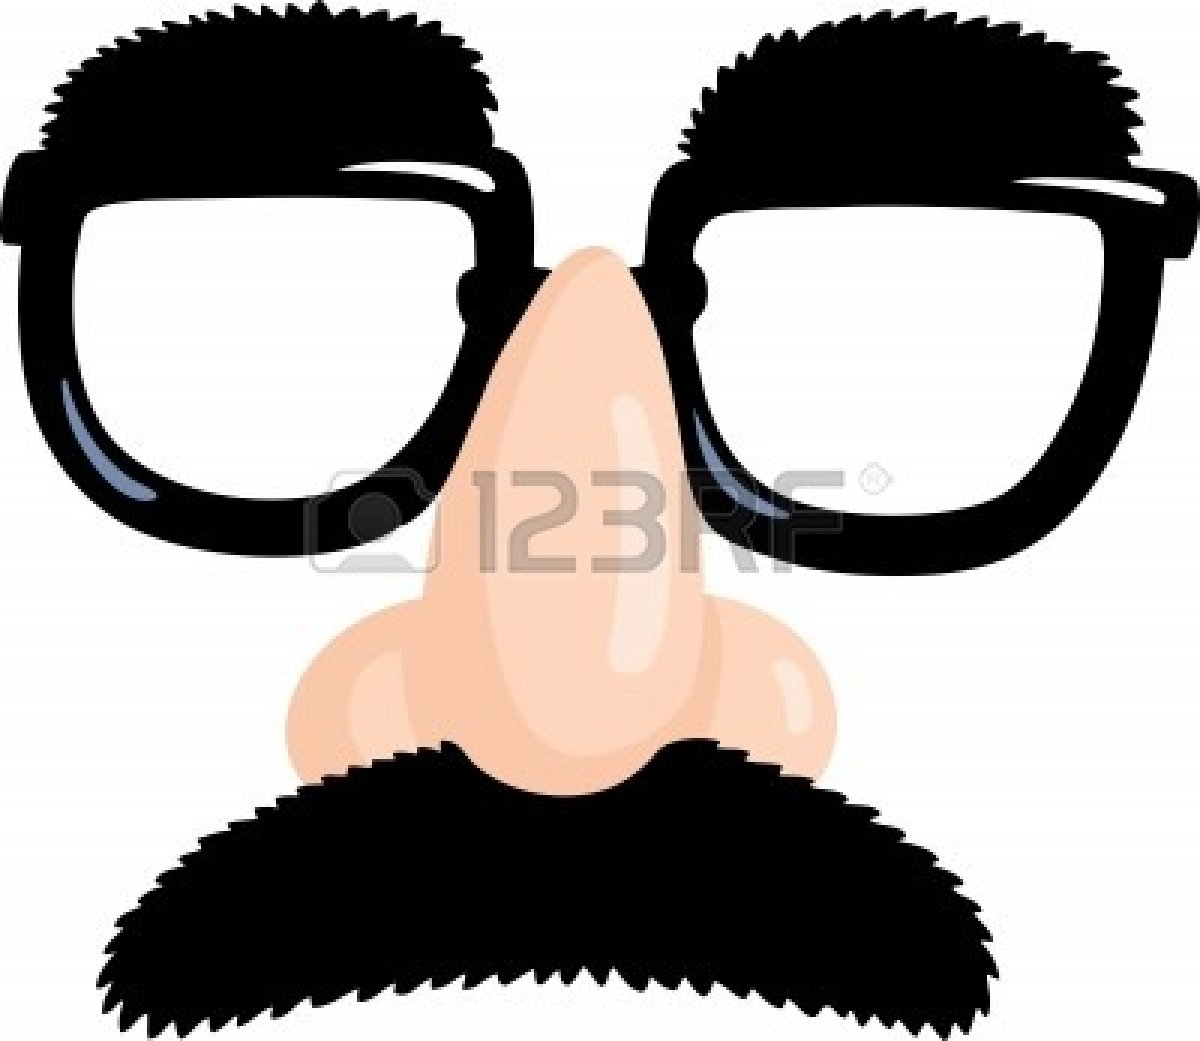 Disguise Clipart 9519657 Disguise Jpg